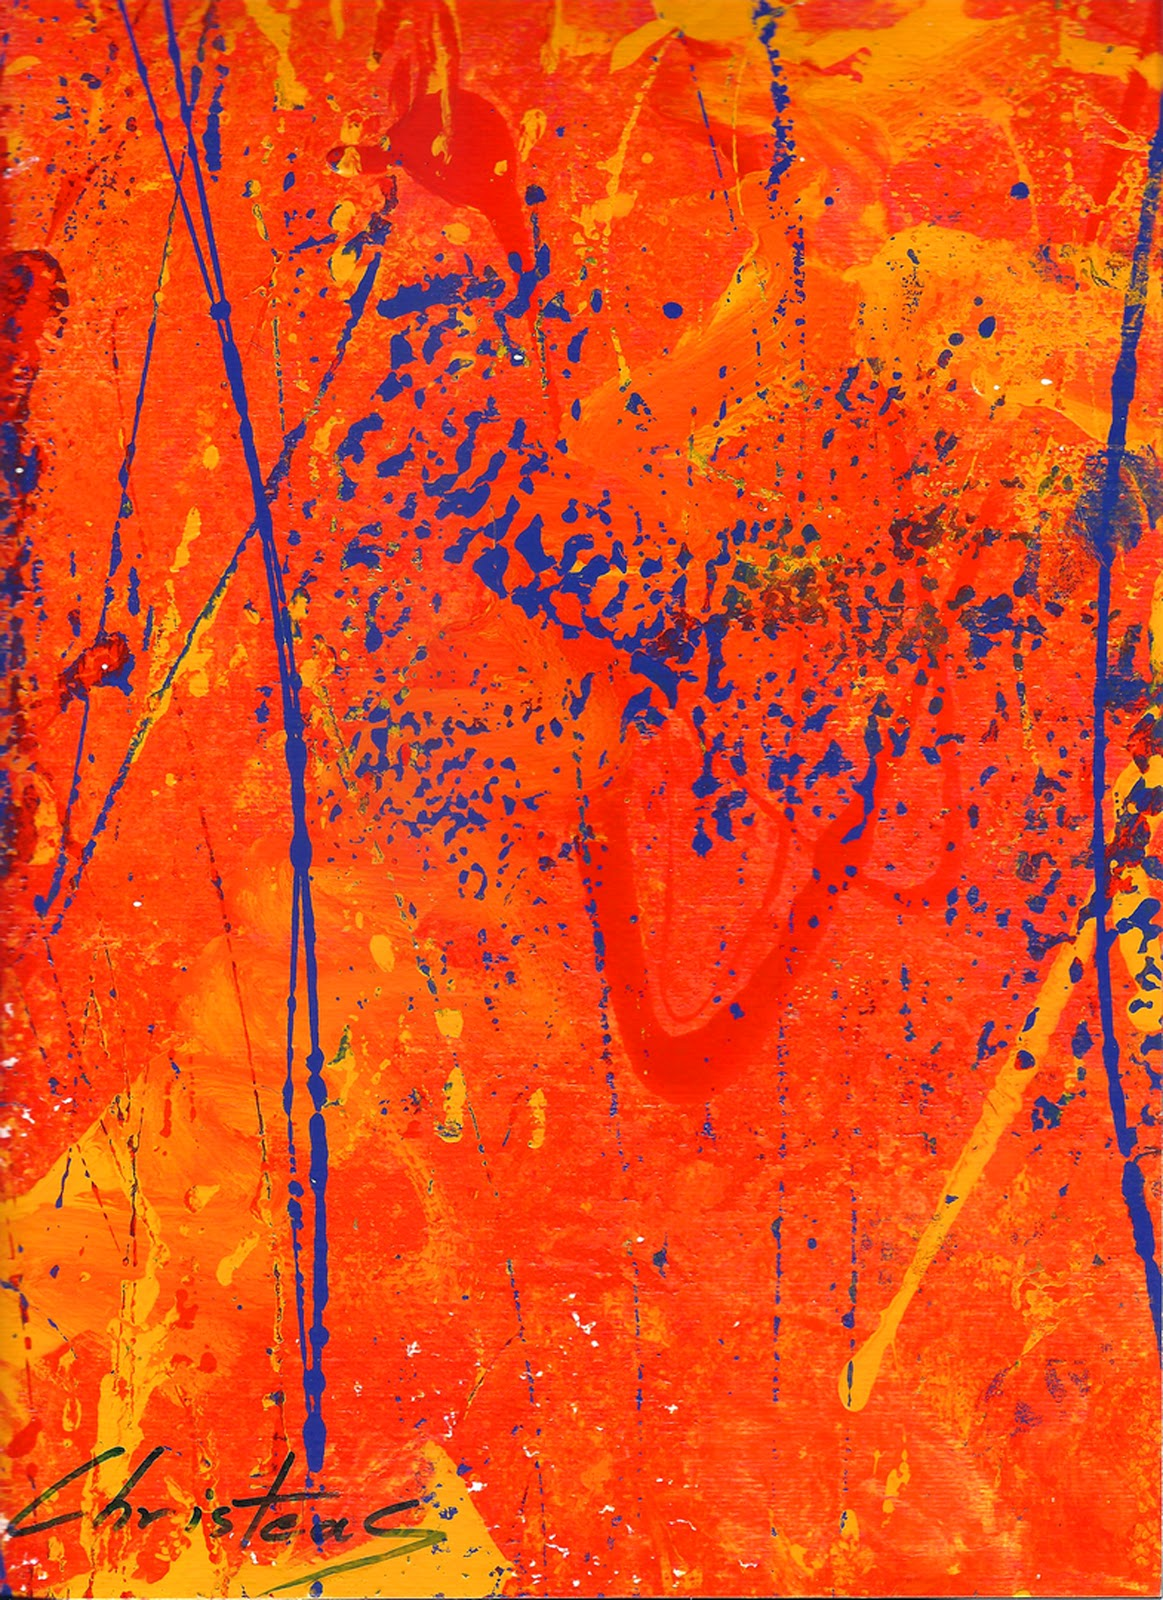 http://2.bp.blogspot.com/-Q-PC_EyDwkI/UJ1Ee4ztNYI/AAAAAAAAL98/lZum6i2J-ro/s1600/Abstract-painting-RED.jpg